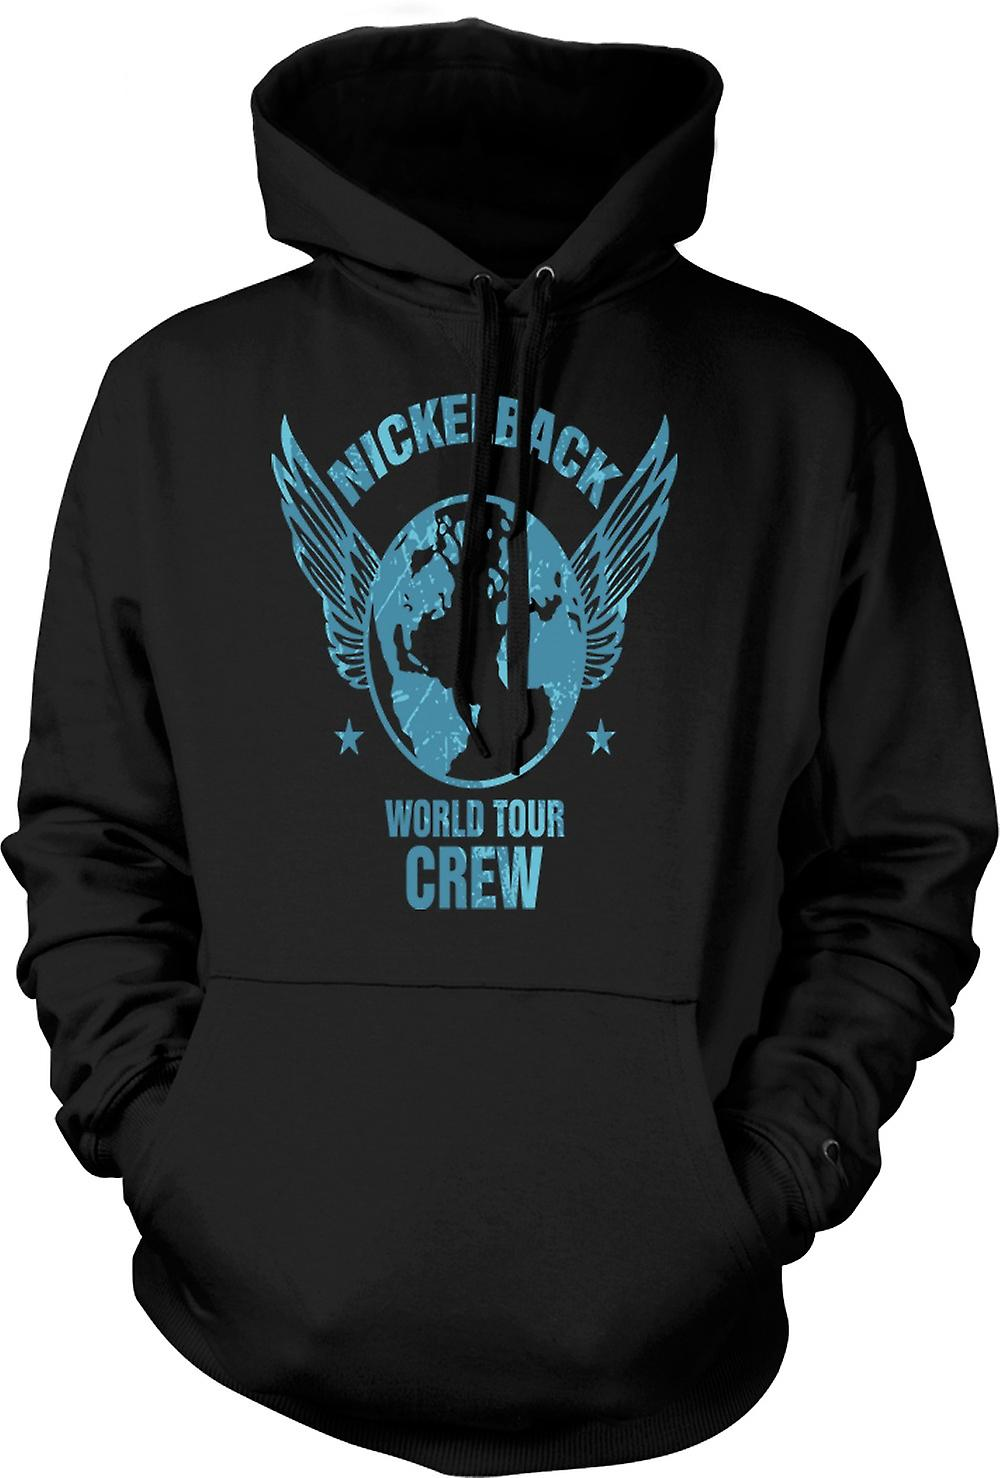 Mens Hoodie - Nickelback World Tour Crew